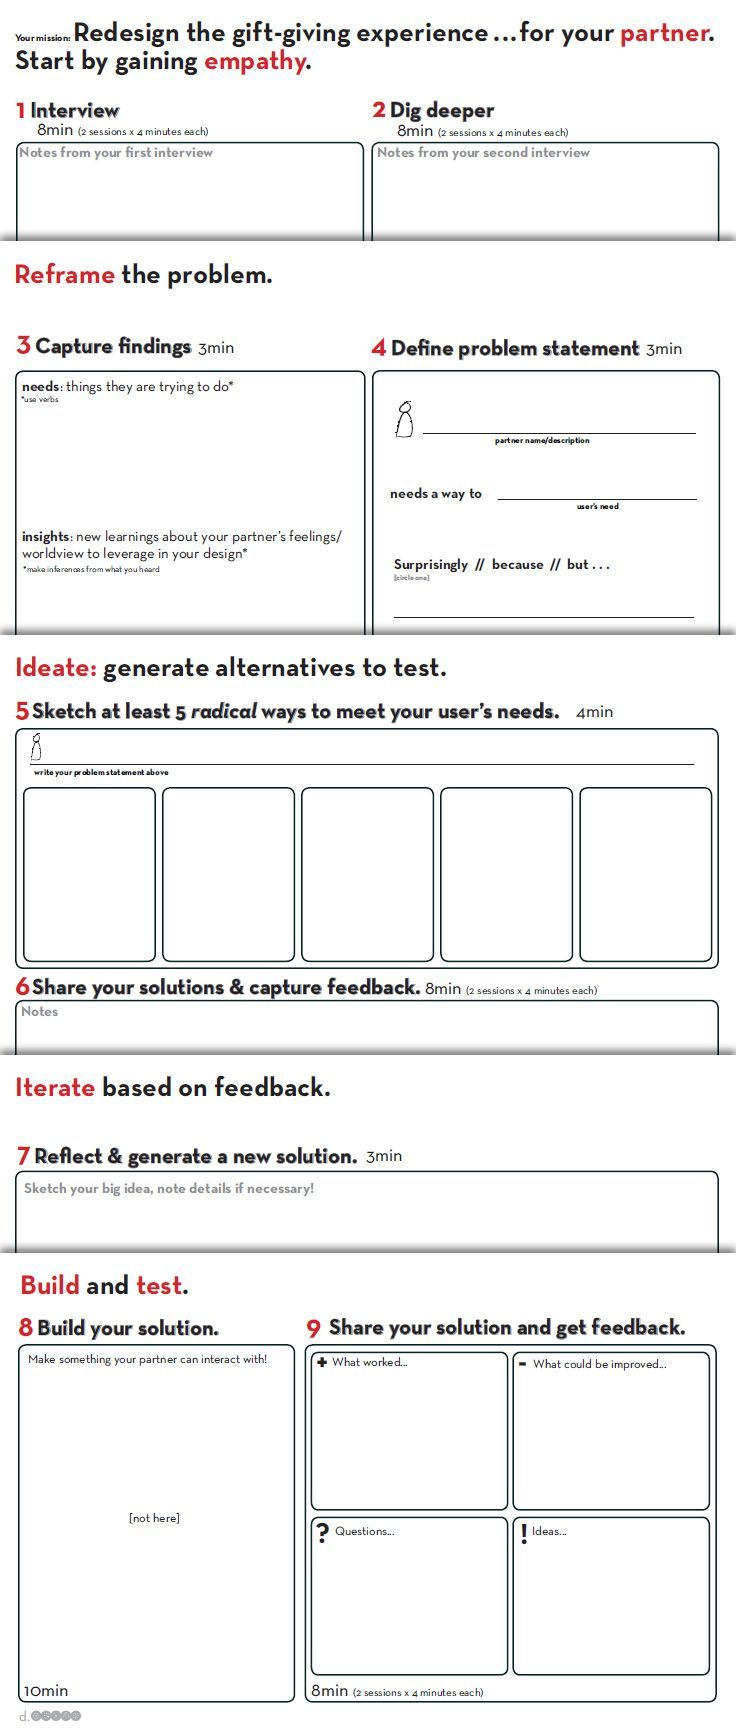 Worksheet | provided by D.School Stanford http://dschool.stanford.edu/dgift/. The UX Blog podcast is also available on iTunes.